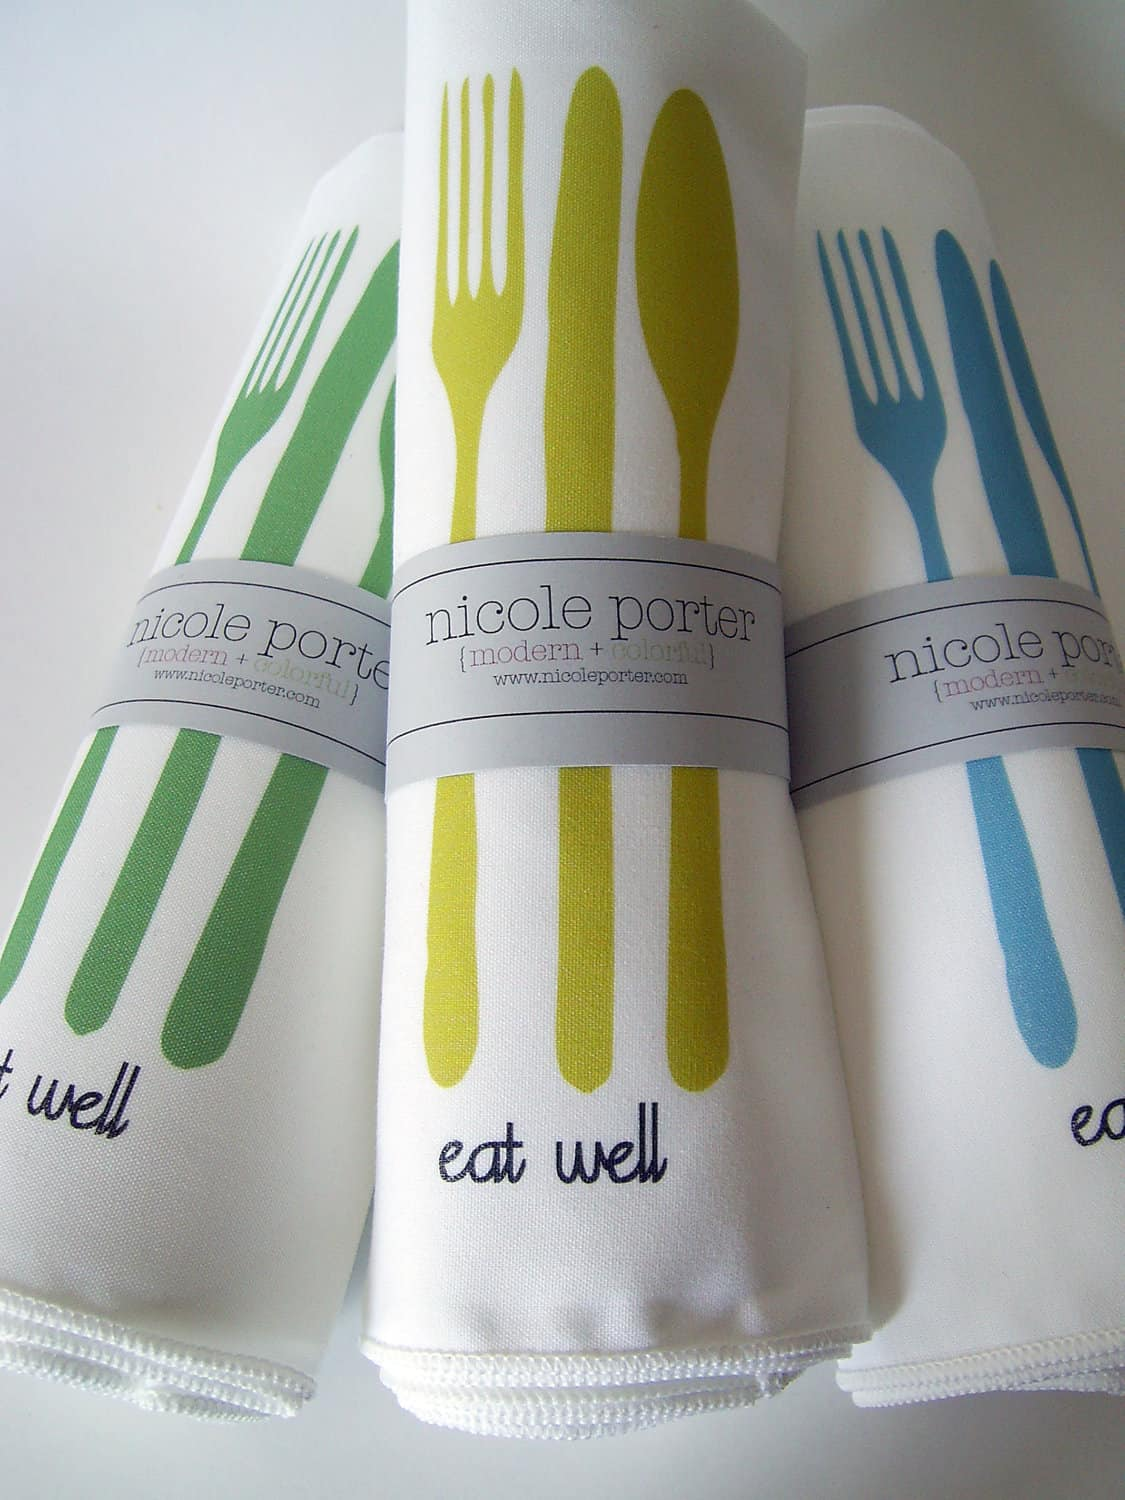 All Things Bright & Neon: Fun Wood Tableware from Nicole Porter Design: gallery image 7